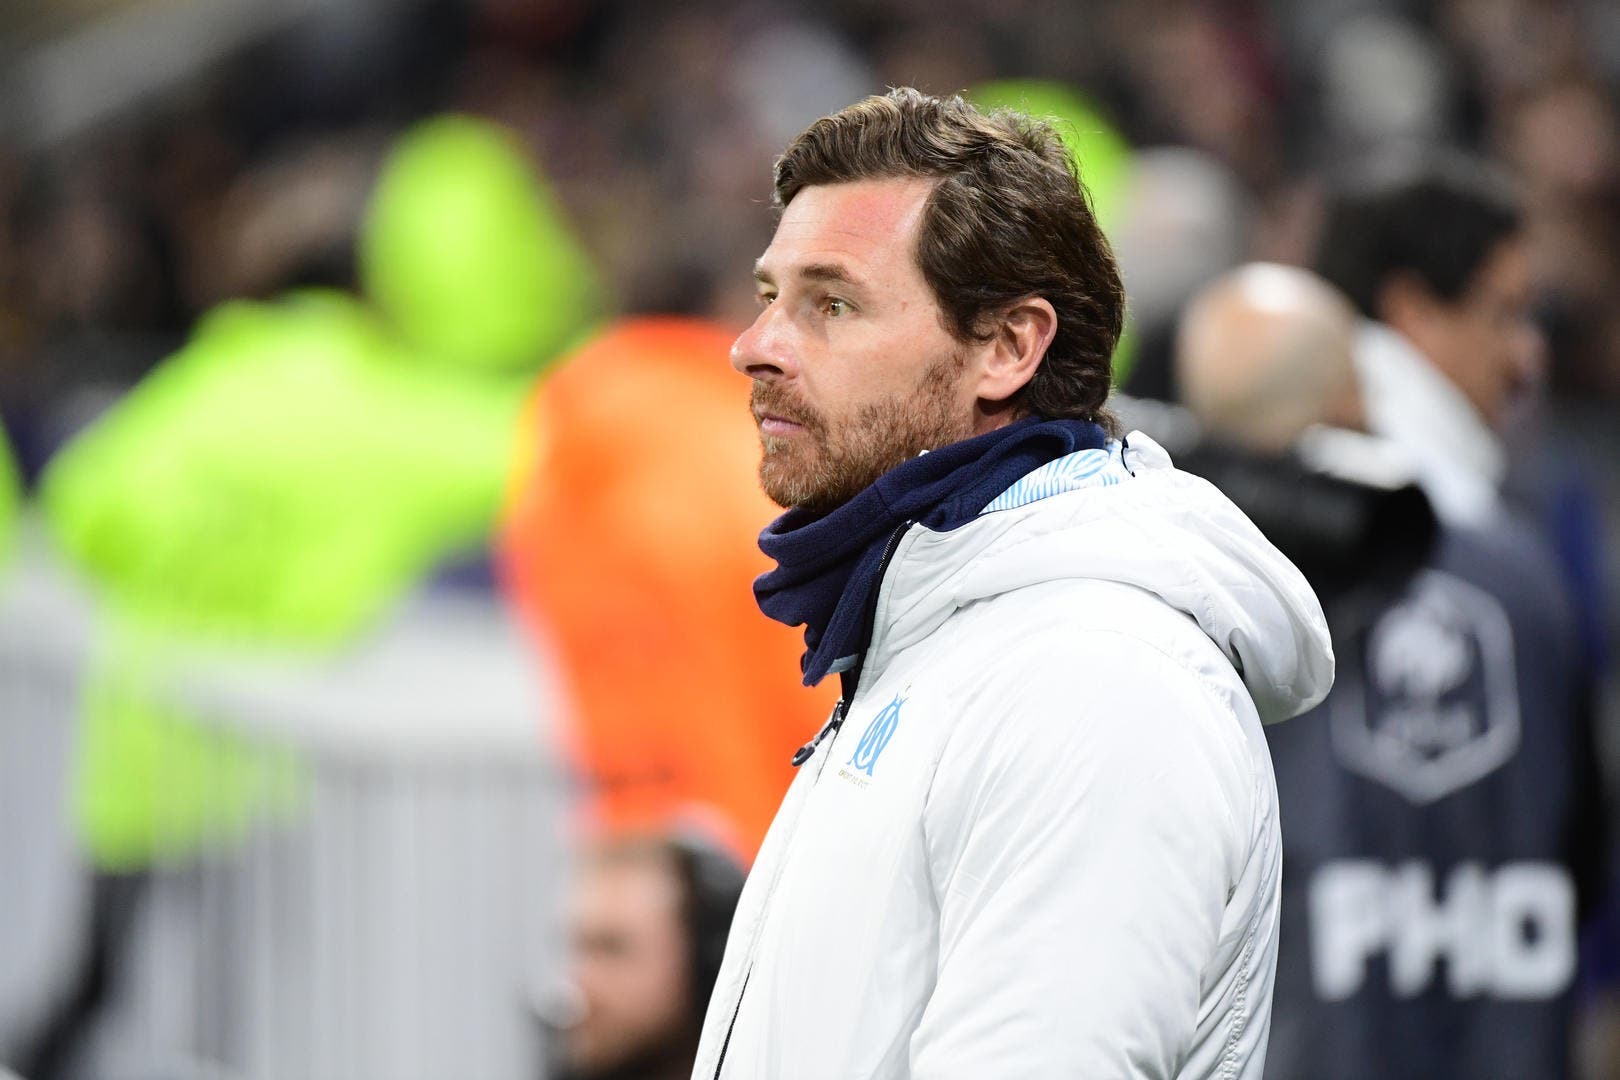 OM : Villas-Boas boss incontesté du mercato à Marseille ? - Foot01.com